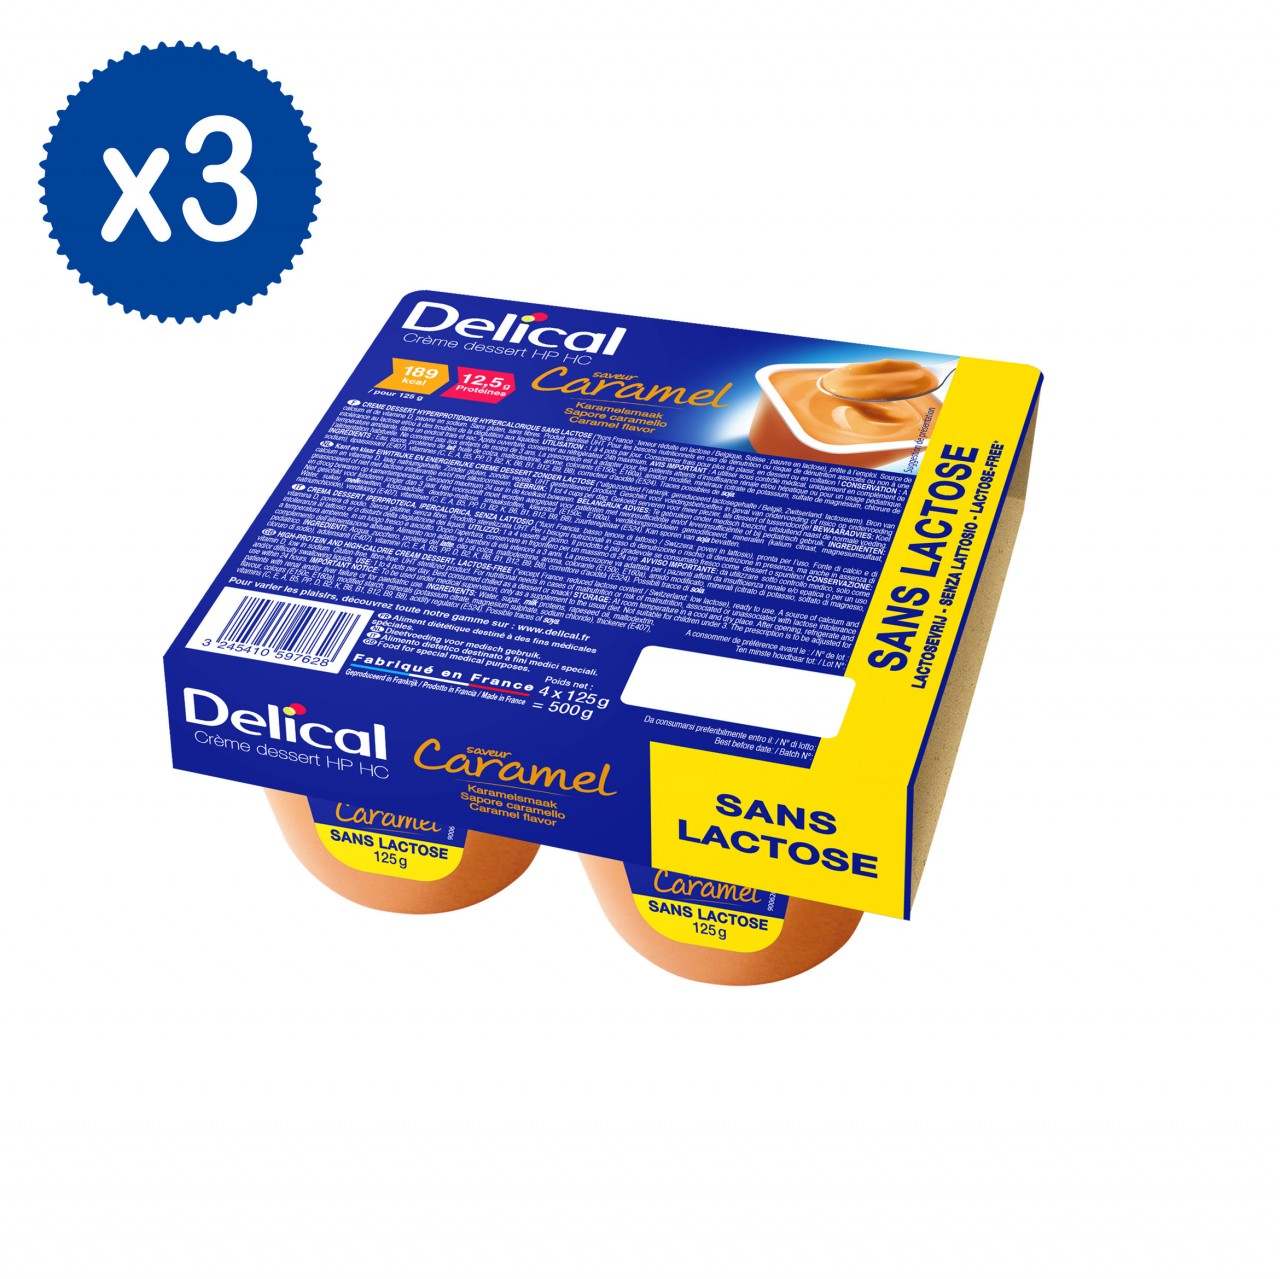 Delical Caramello 12 x 125g